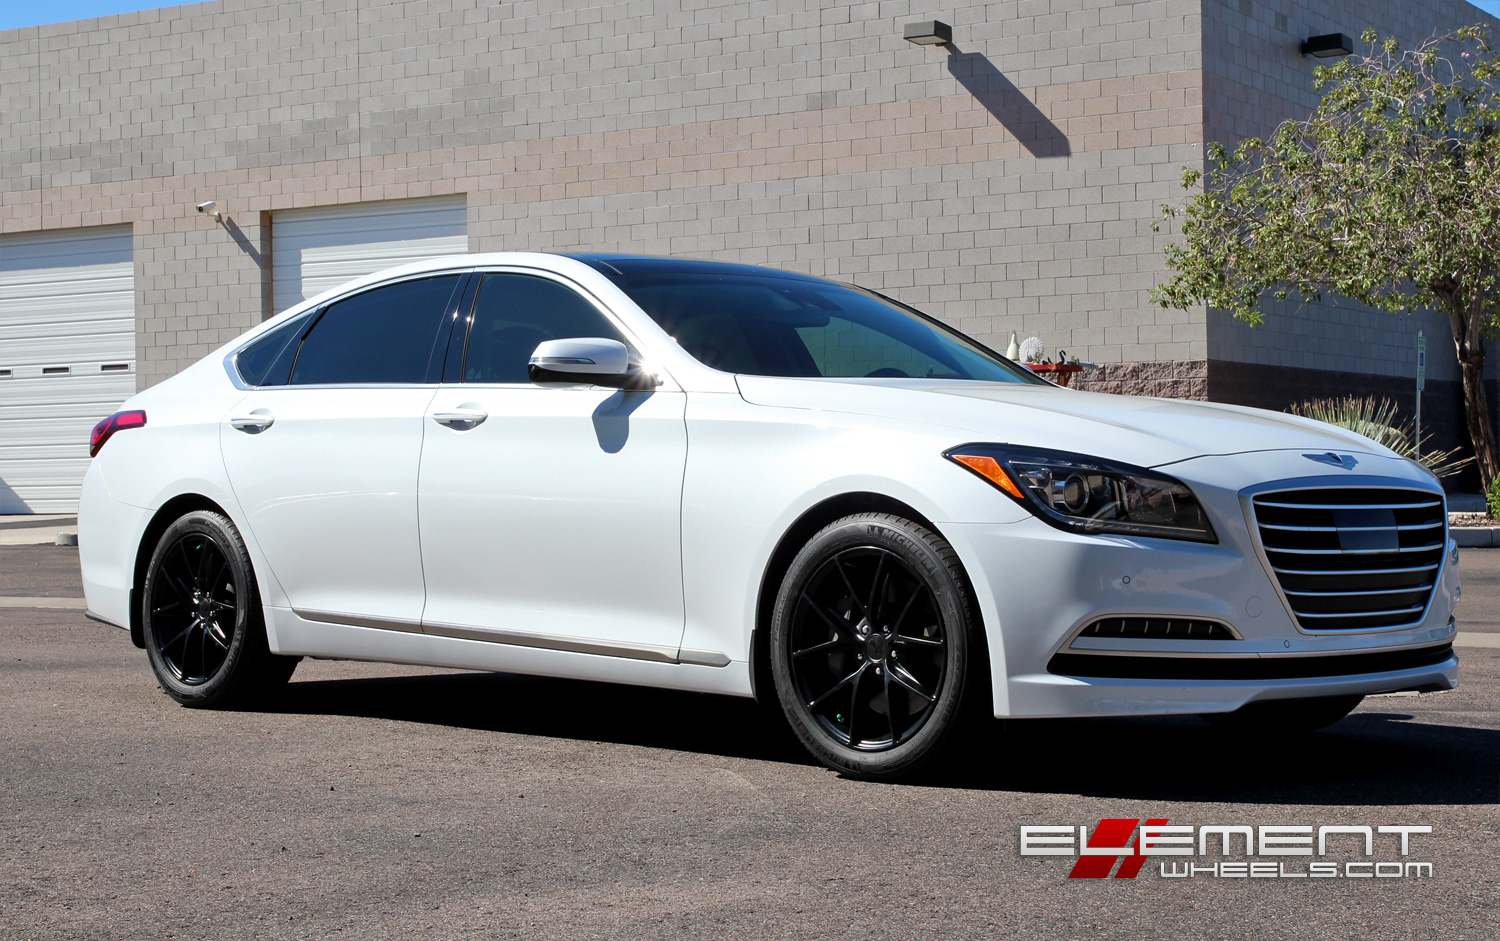 18 Inch Niche Misano Matte Black On 2015 Hyundai Genesis Sedan W Specs Element Wheels